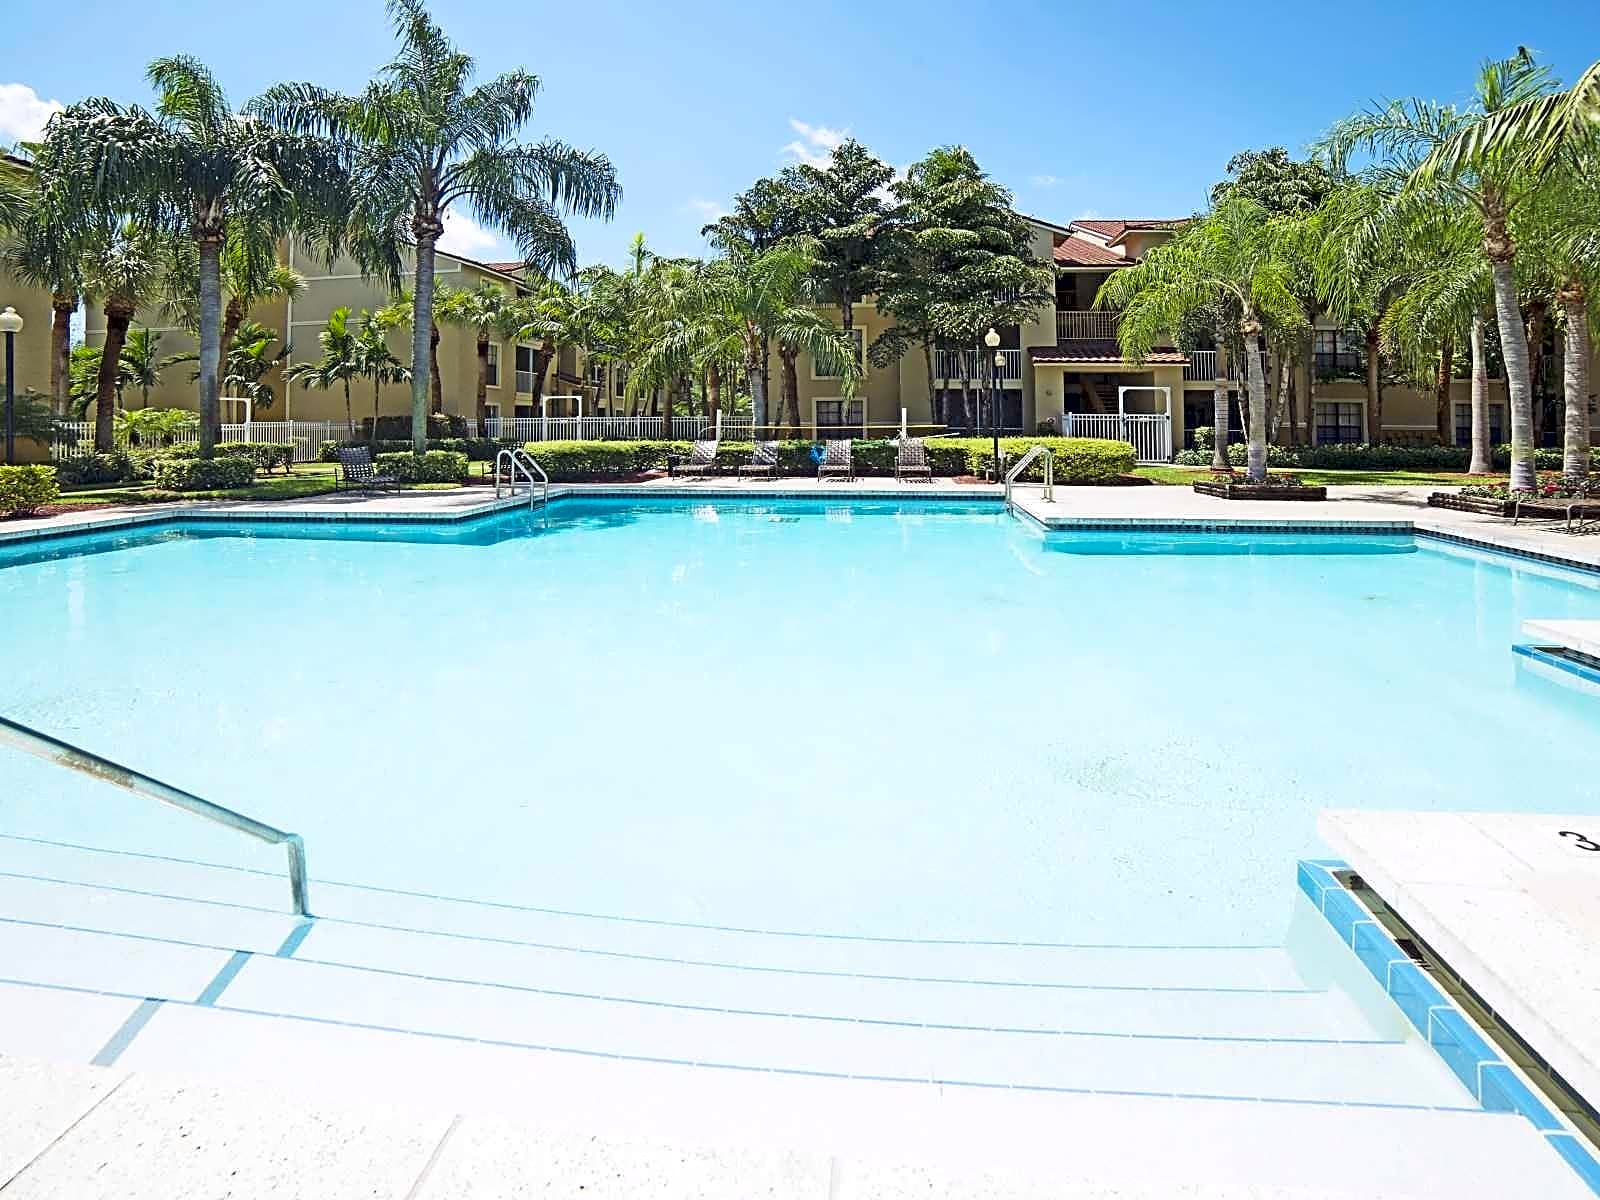 Port Royale Apartments for rent in Fort Lauderdale